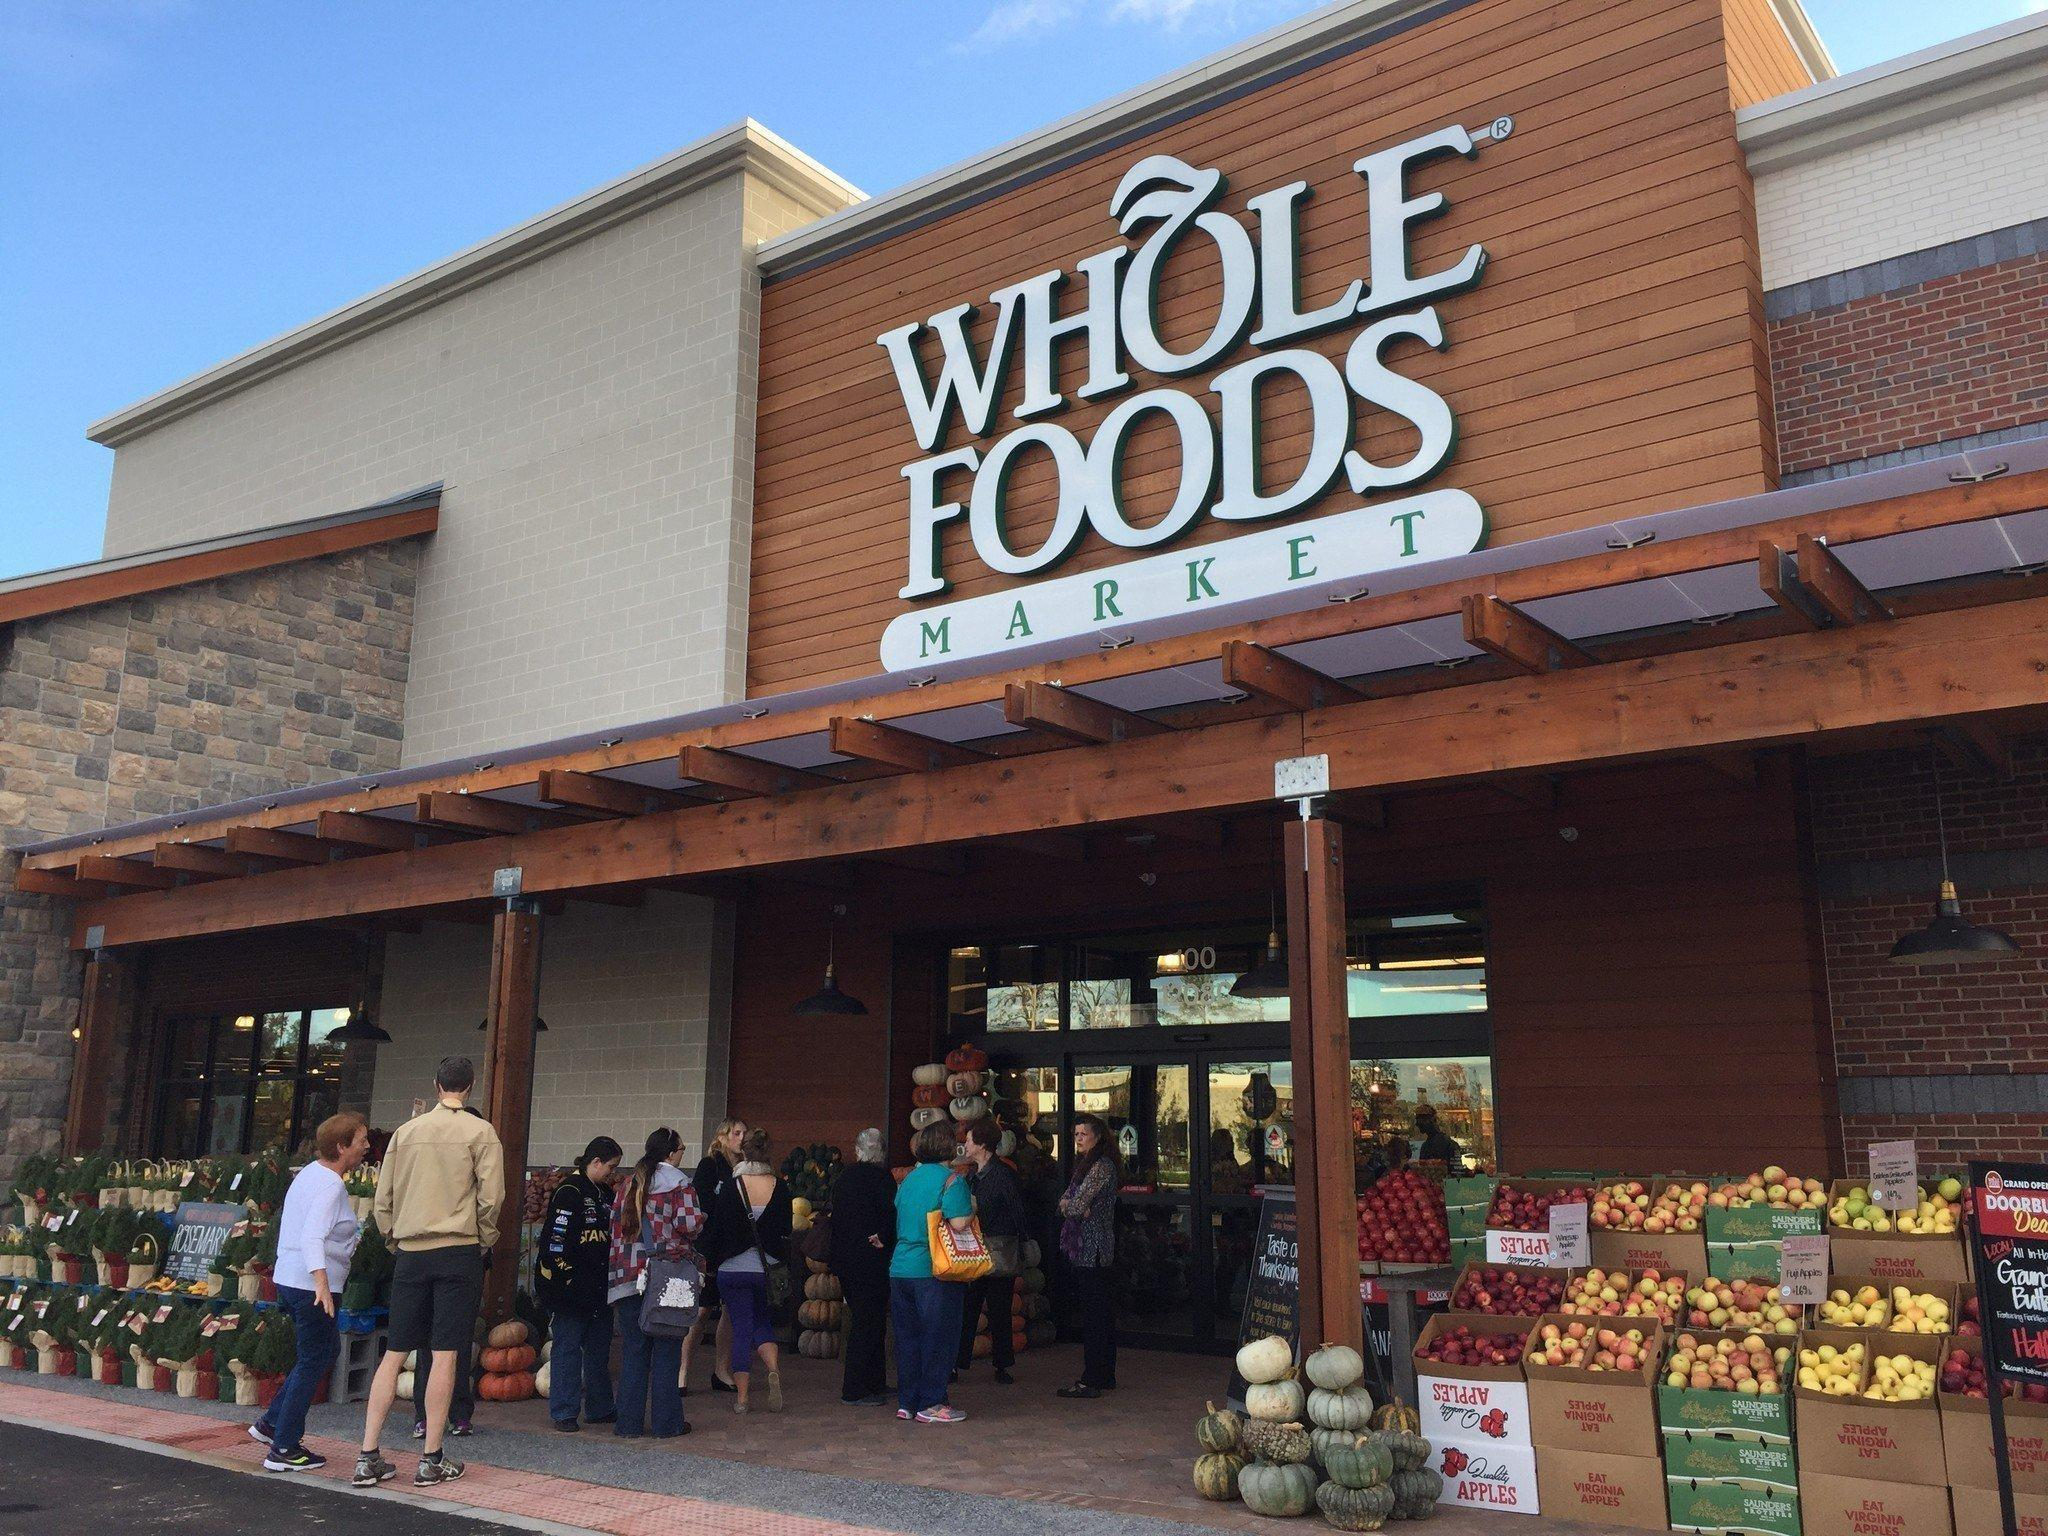 Out) Whole Foods Gift Cards 10% Off